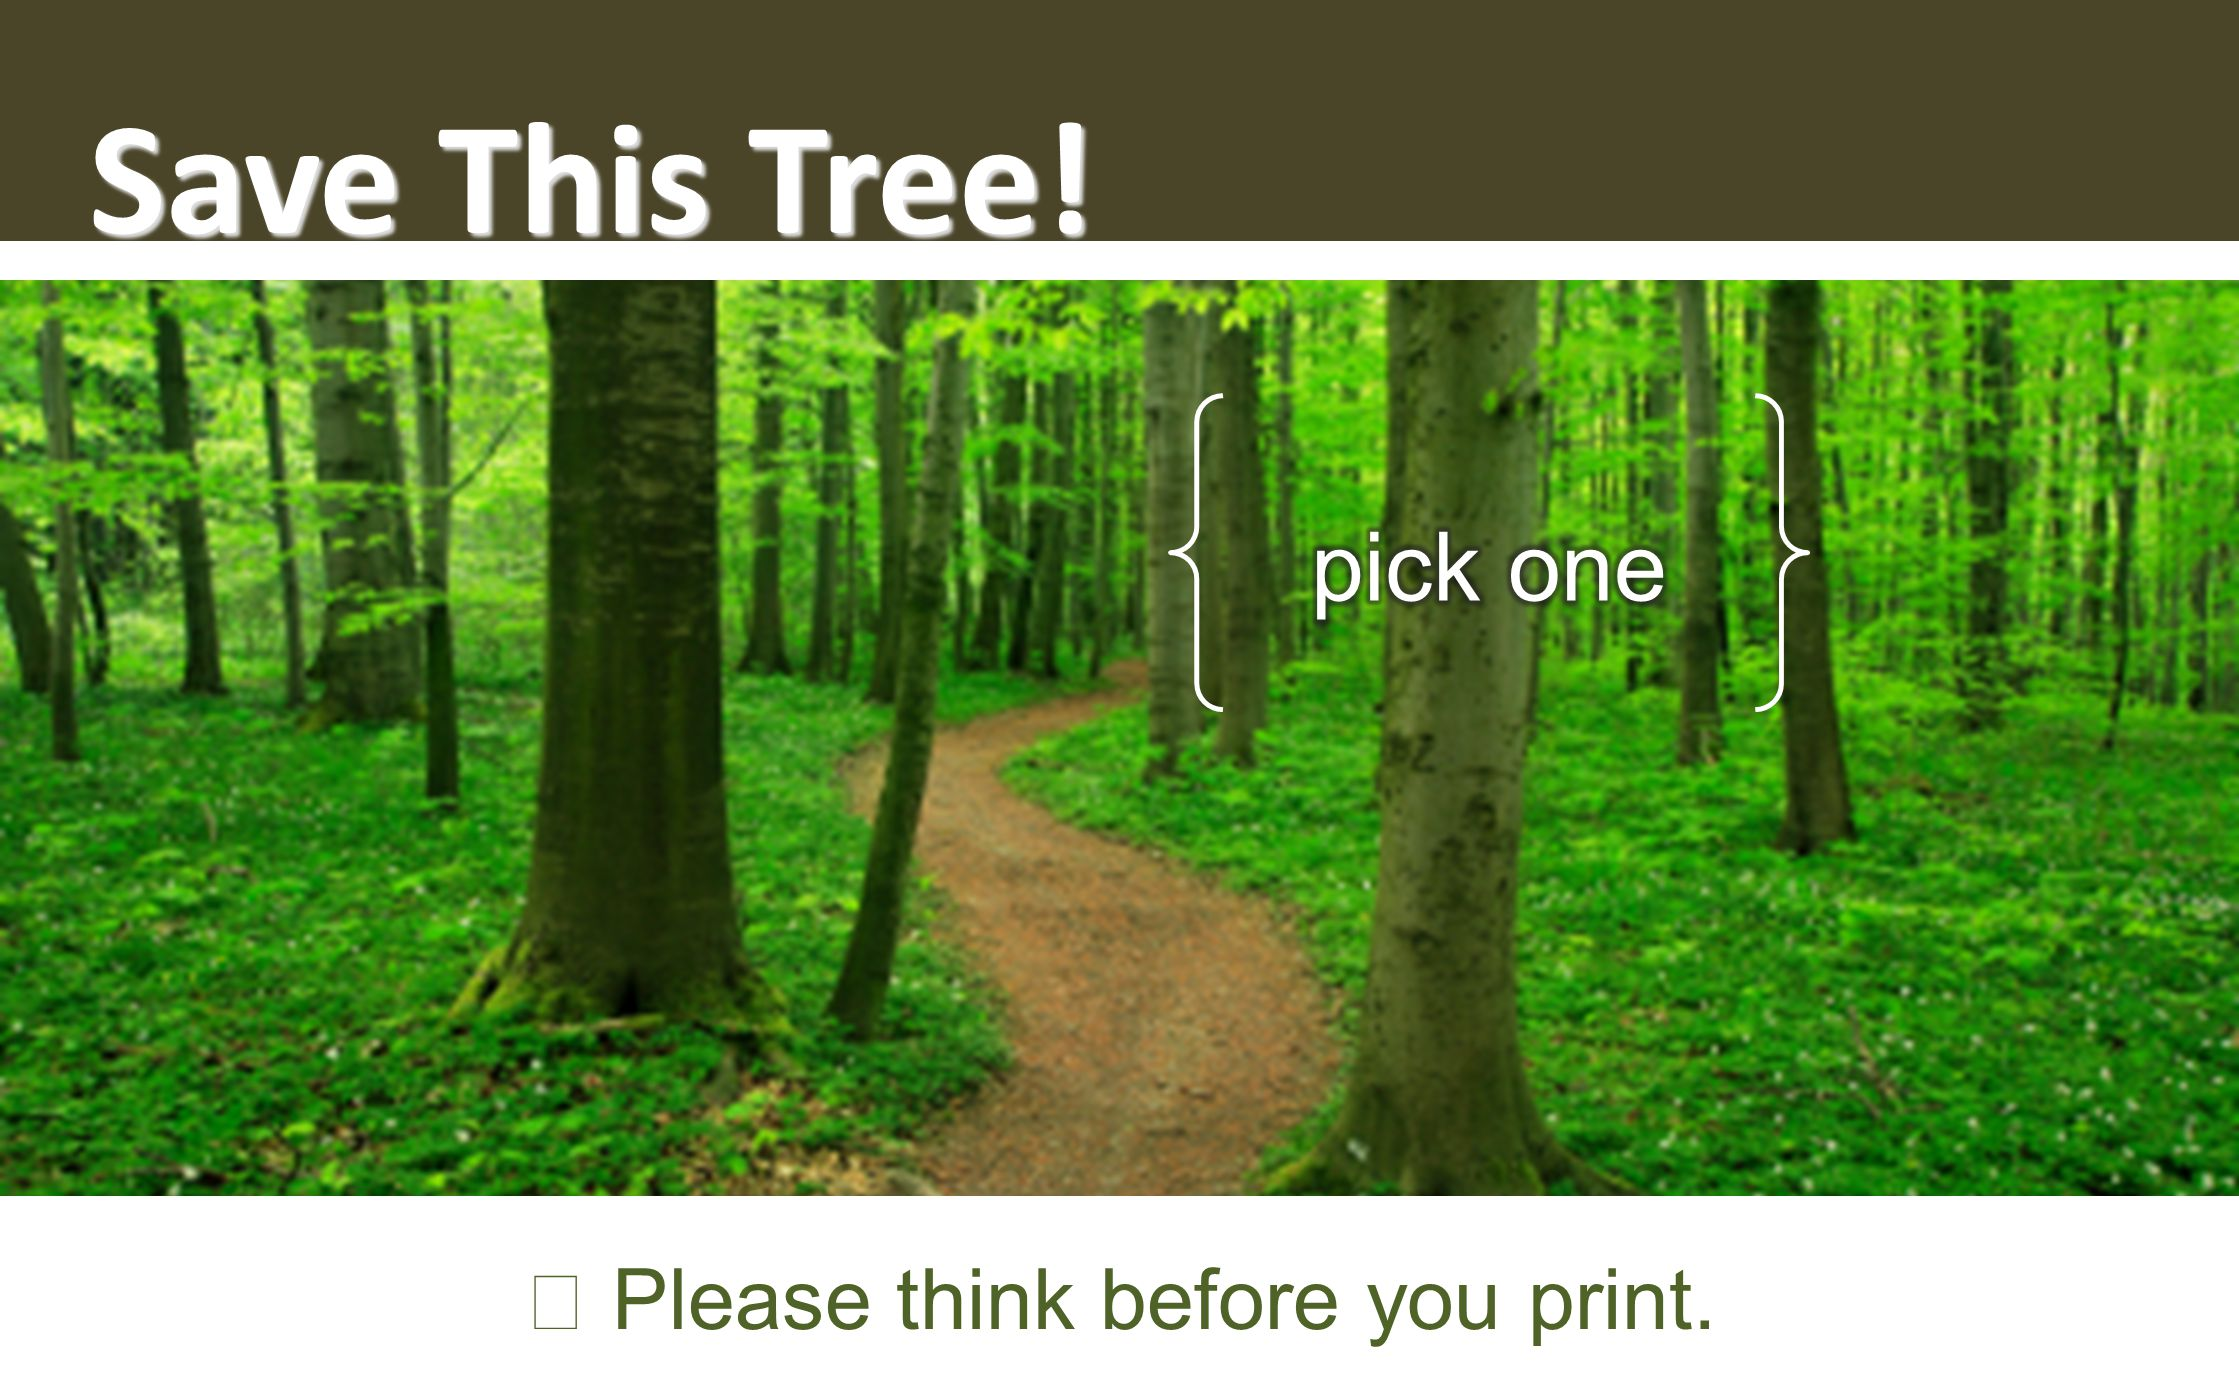 Save This Tree! ☞ Please think before you print.